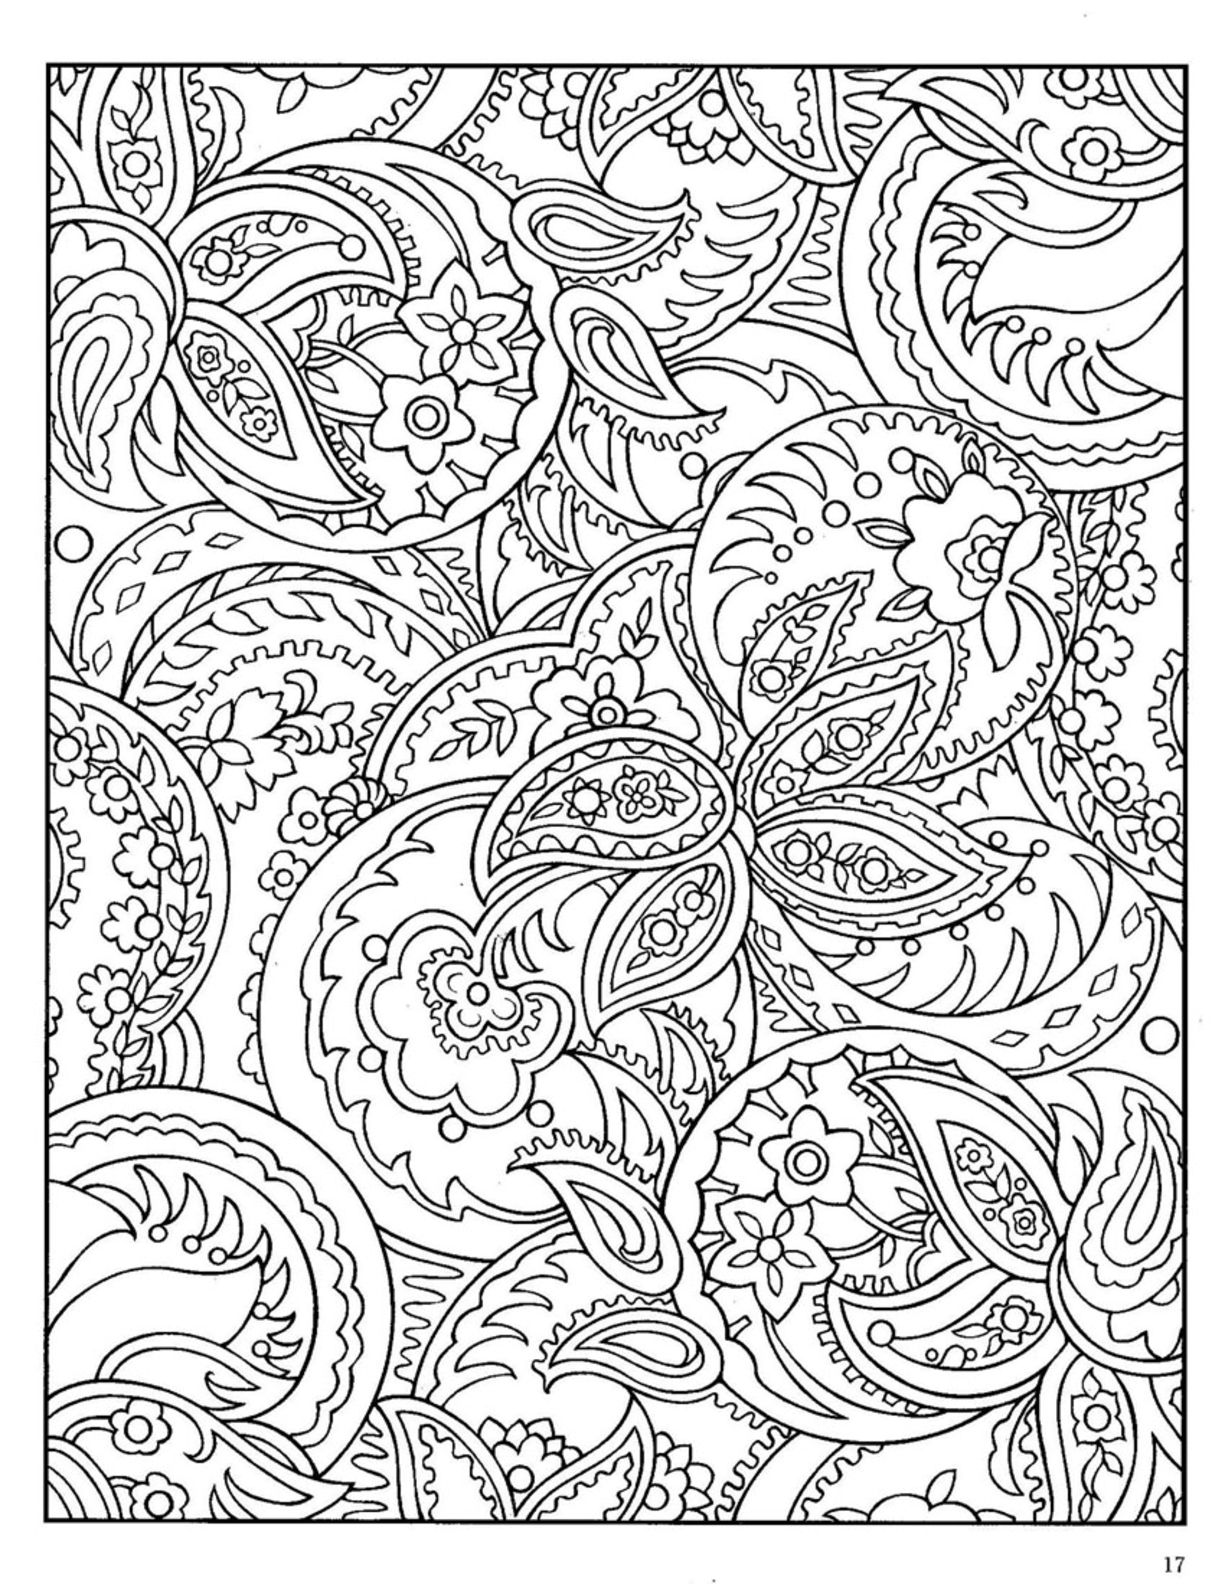 Paisley Designs - ☮ Color it Yourself! Art psychedelic ...